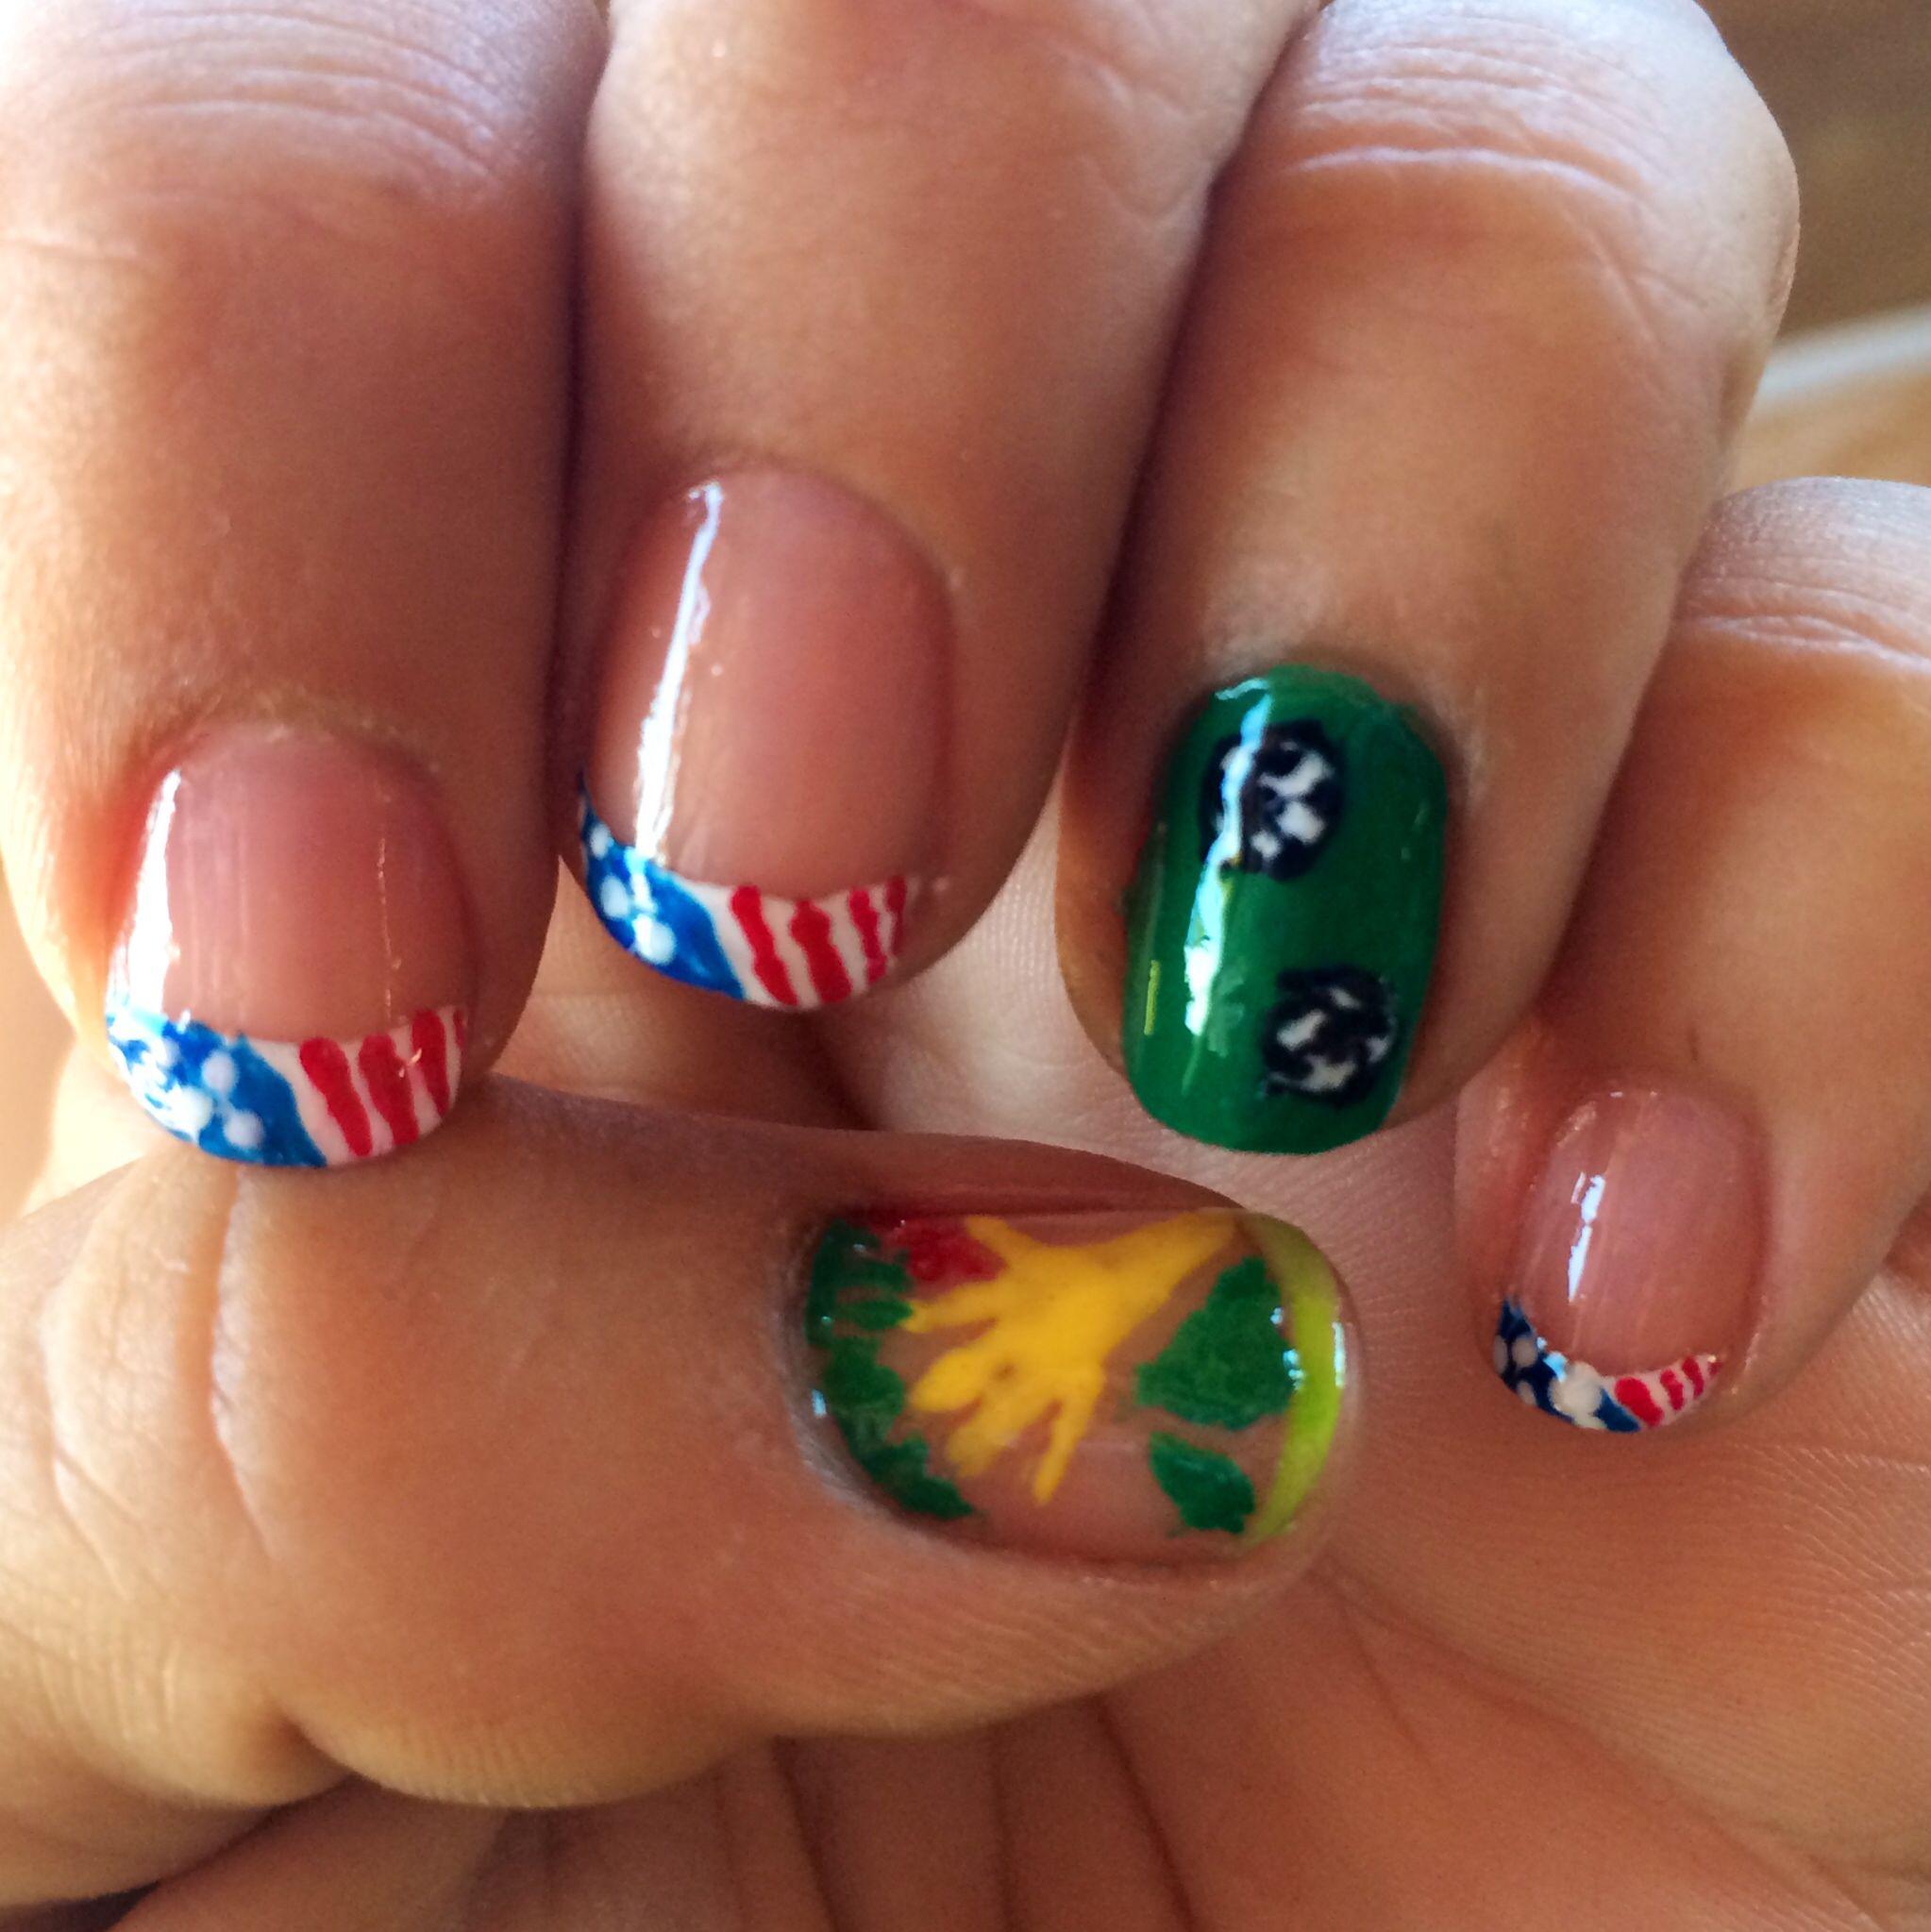 Fifa world cup nails go usa please dont judge me for how fifa world cup nails go usa please dont judge me for how badly the fifa emblem turned out prinsesfo Gallery